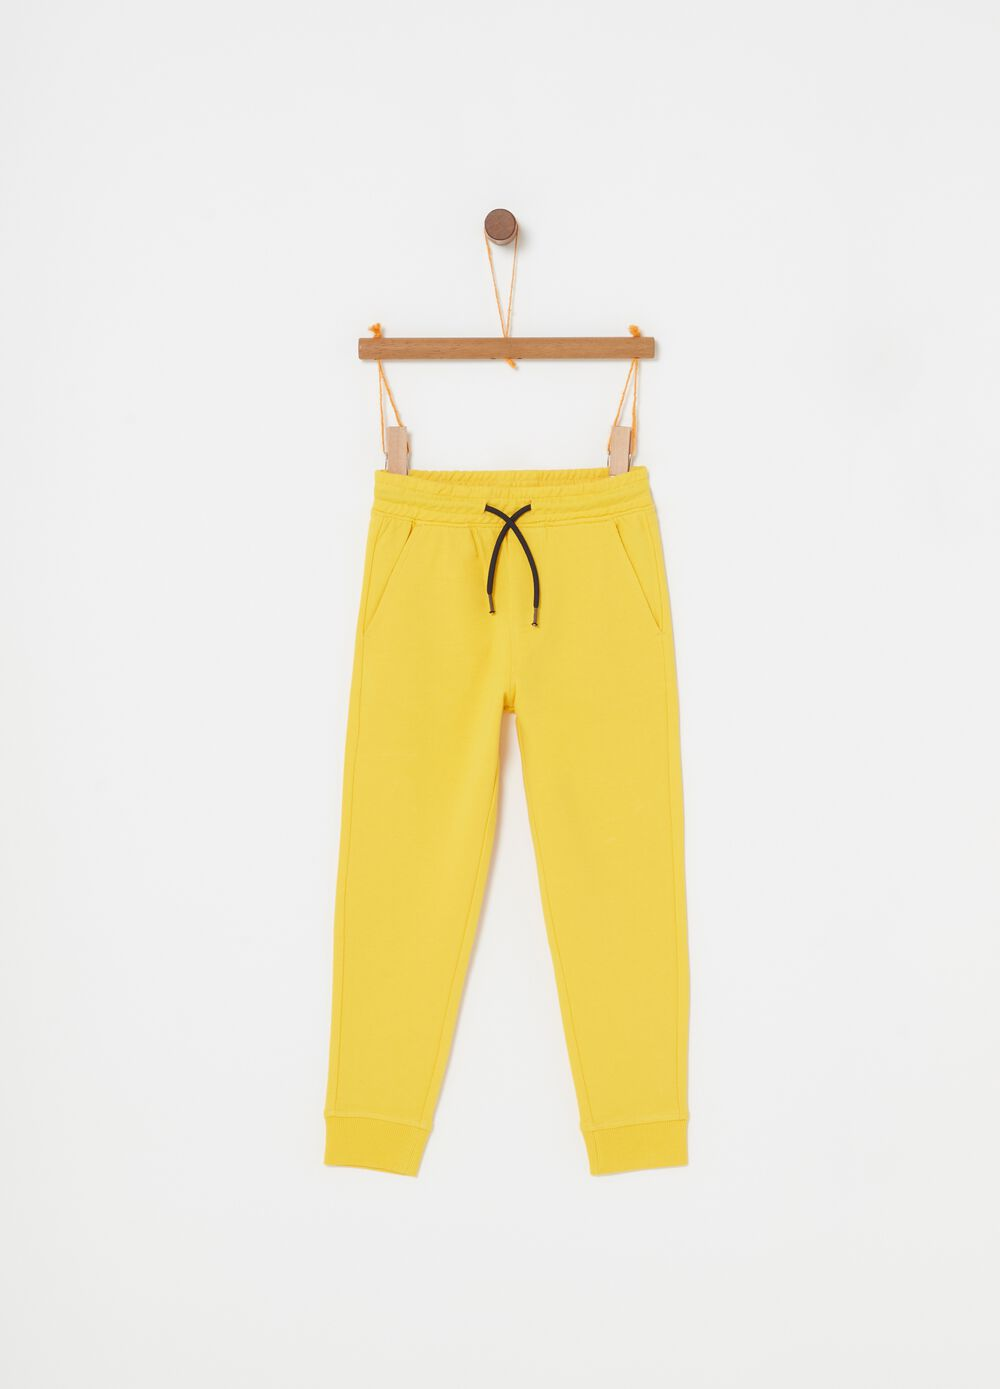 Pantaloni in French Terry biologico tasche